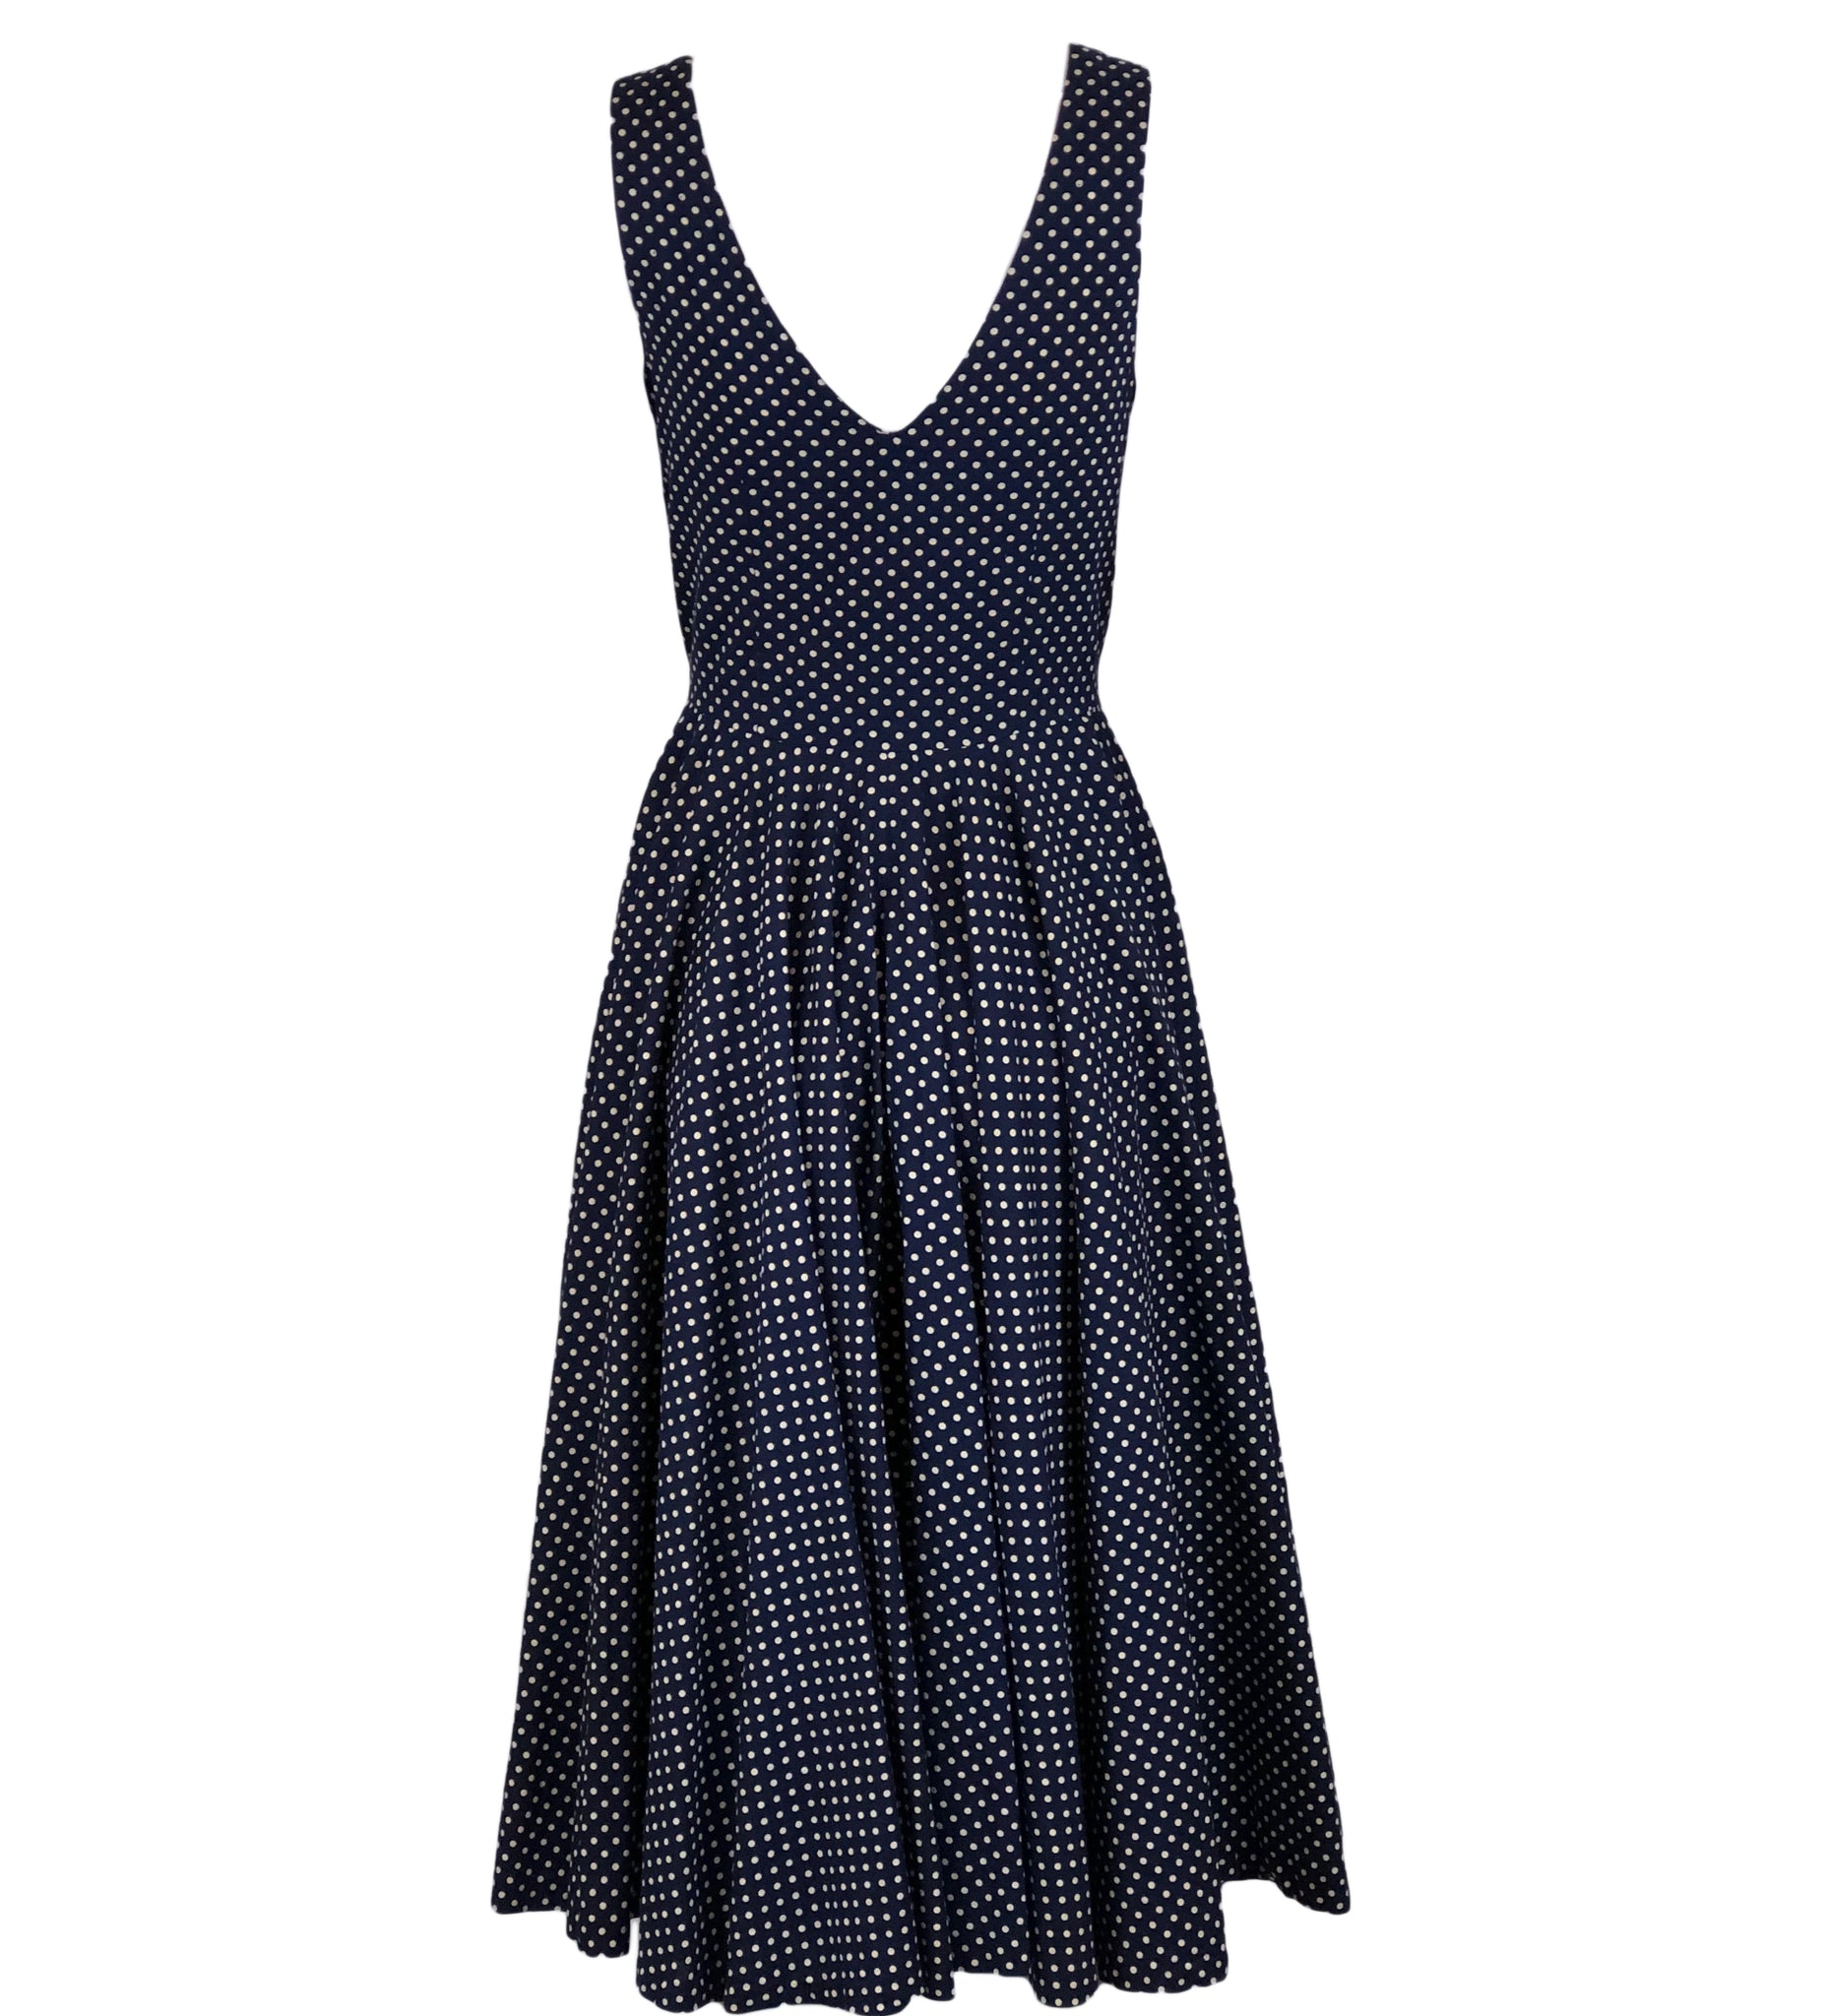 50s Blue Cotton Polka Dot Dress Back 3 of 5